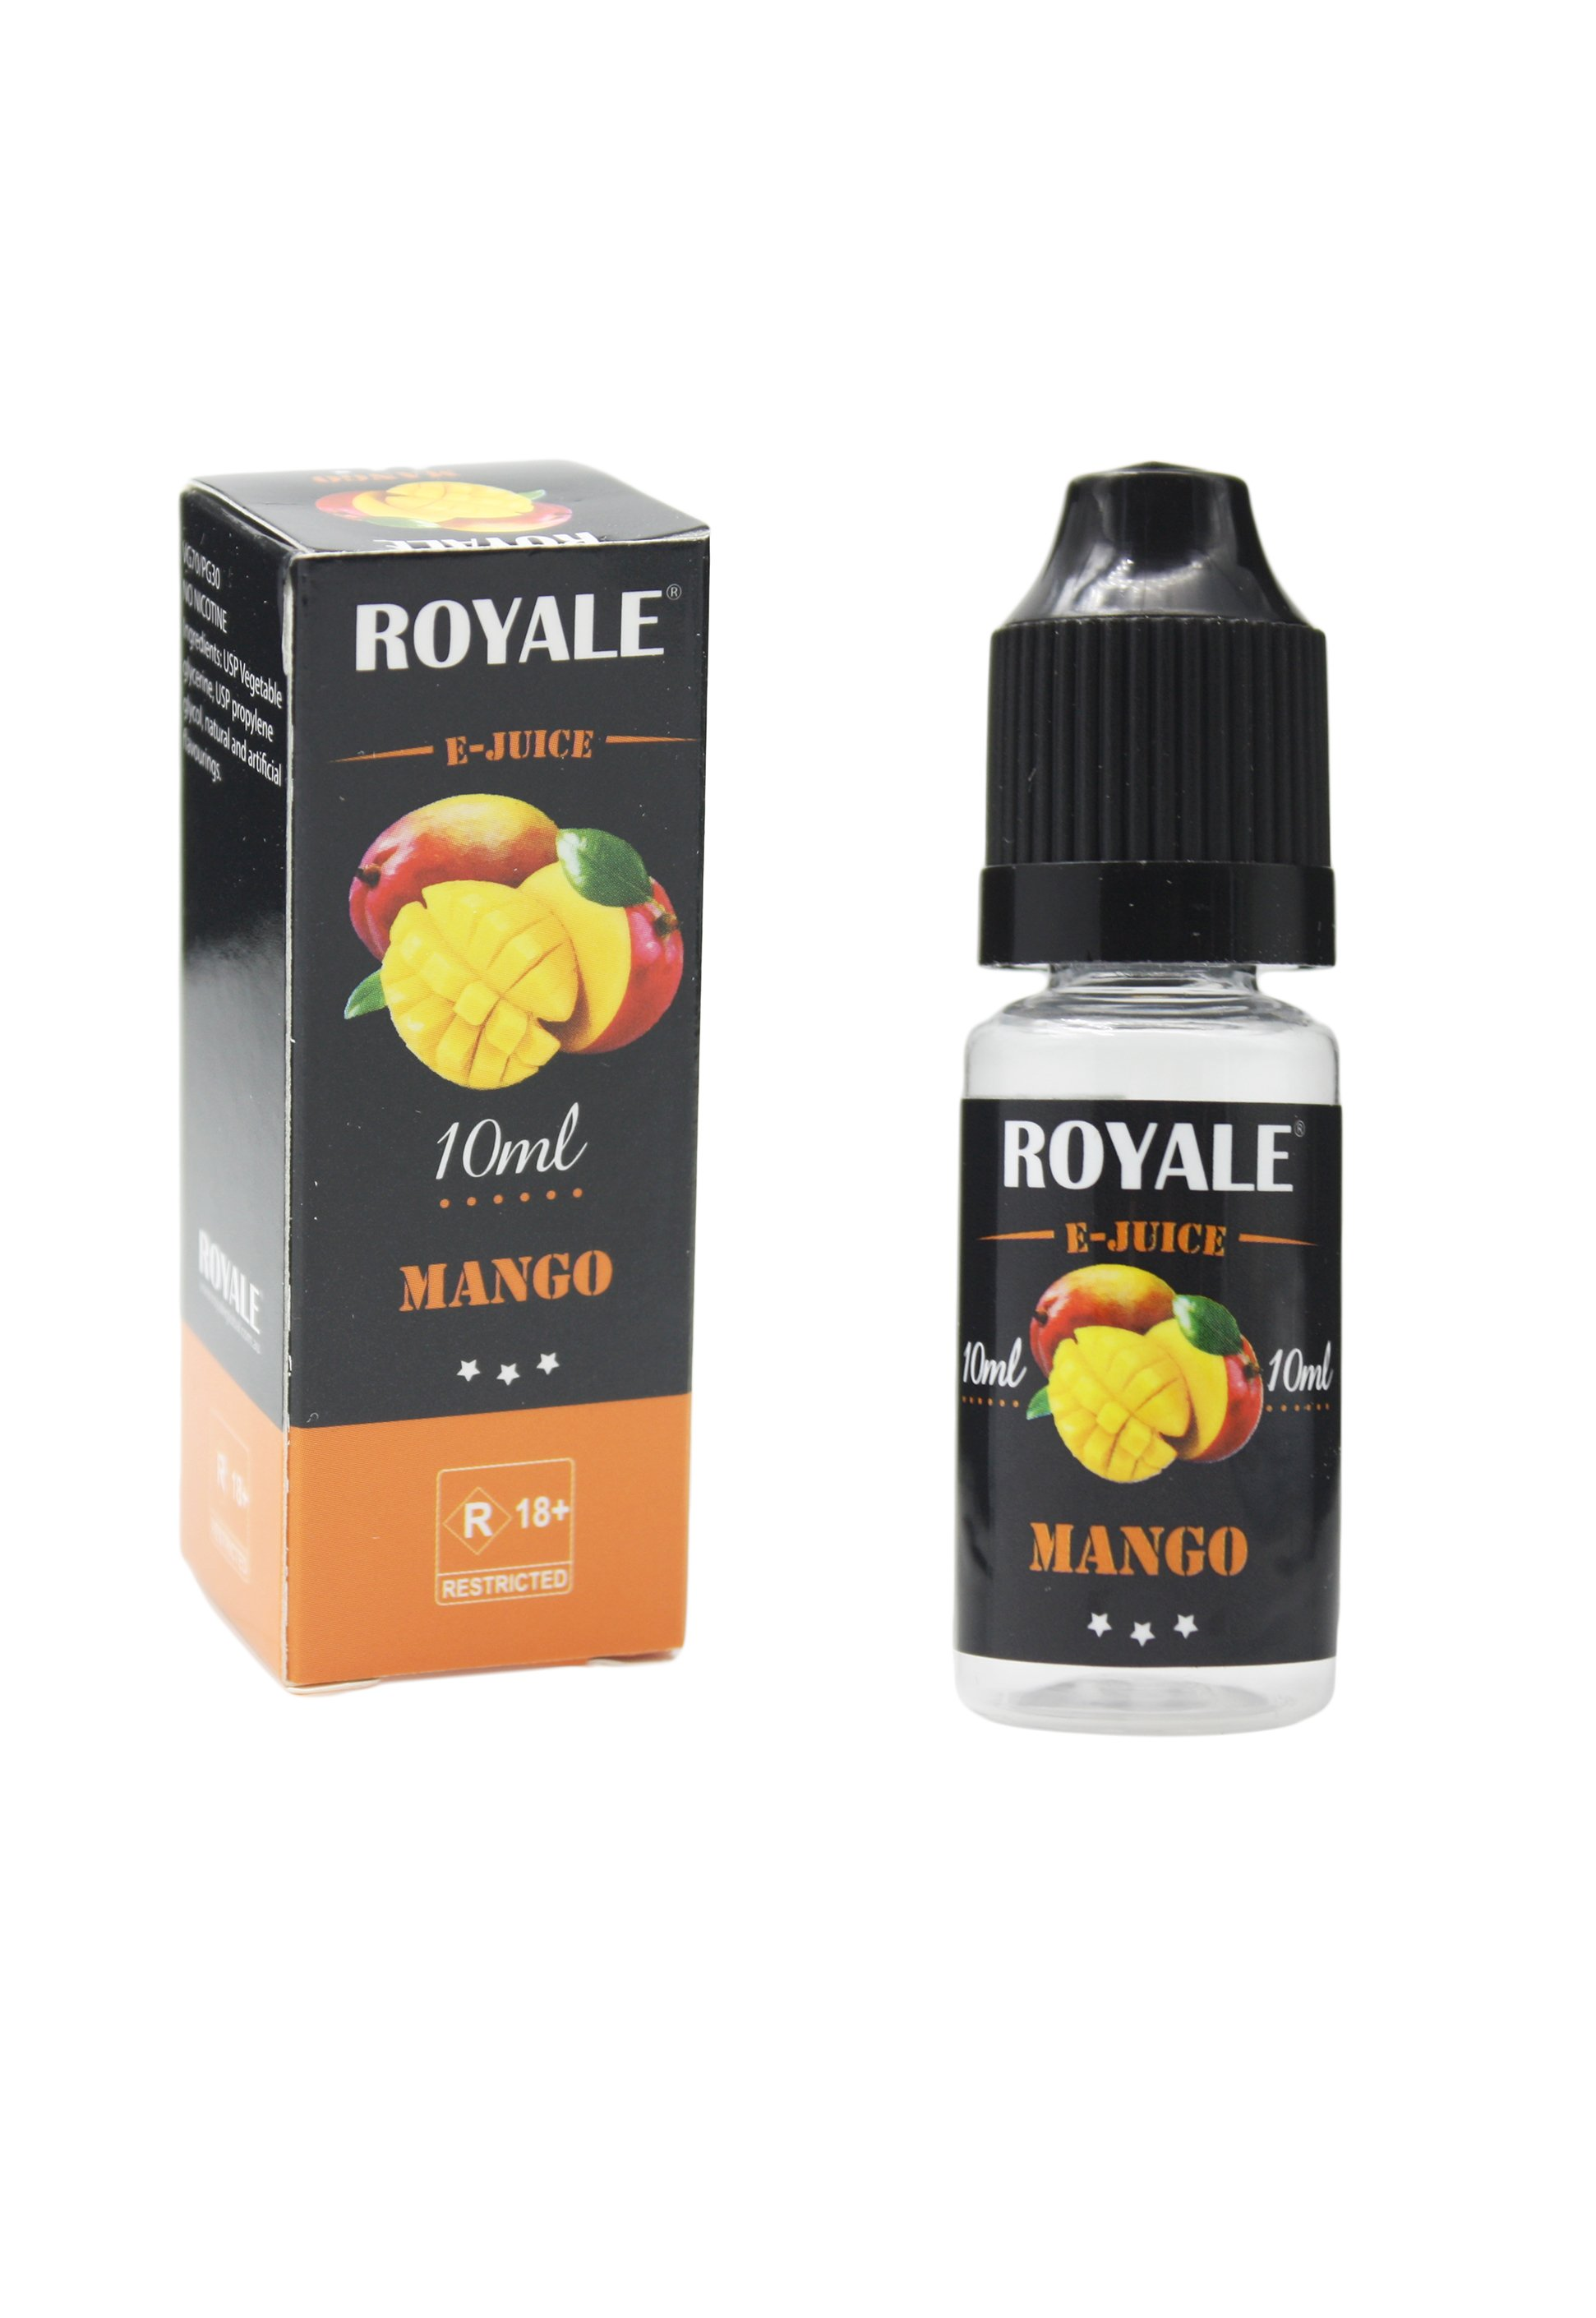 Royale E-juice- Mango